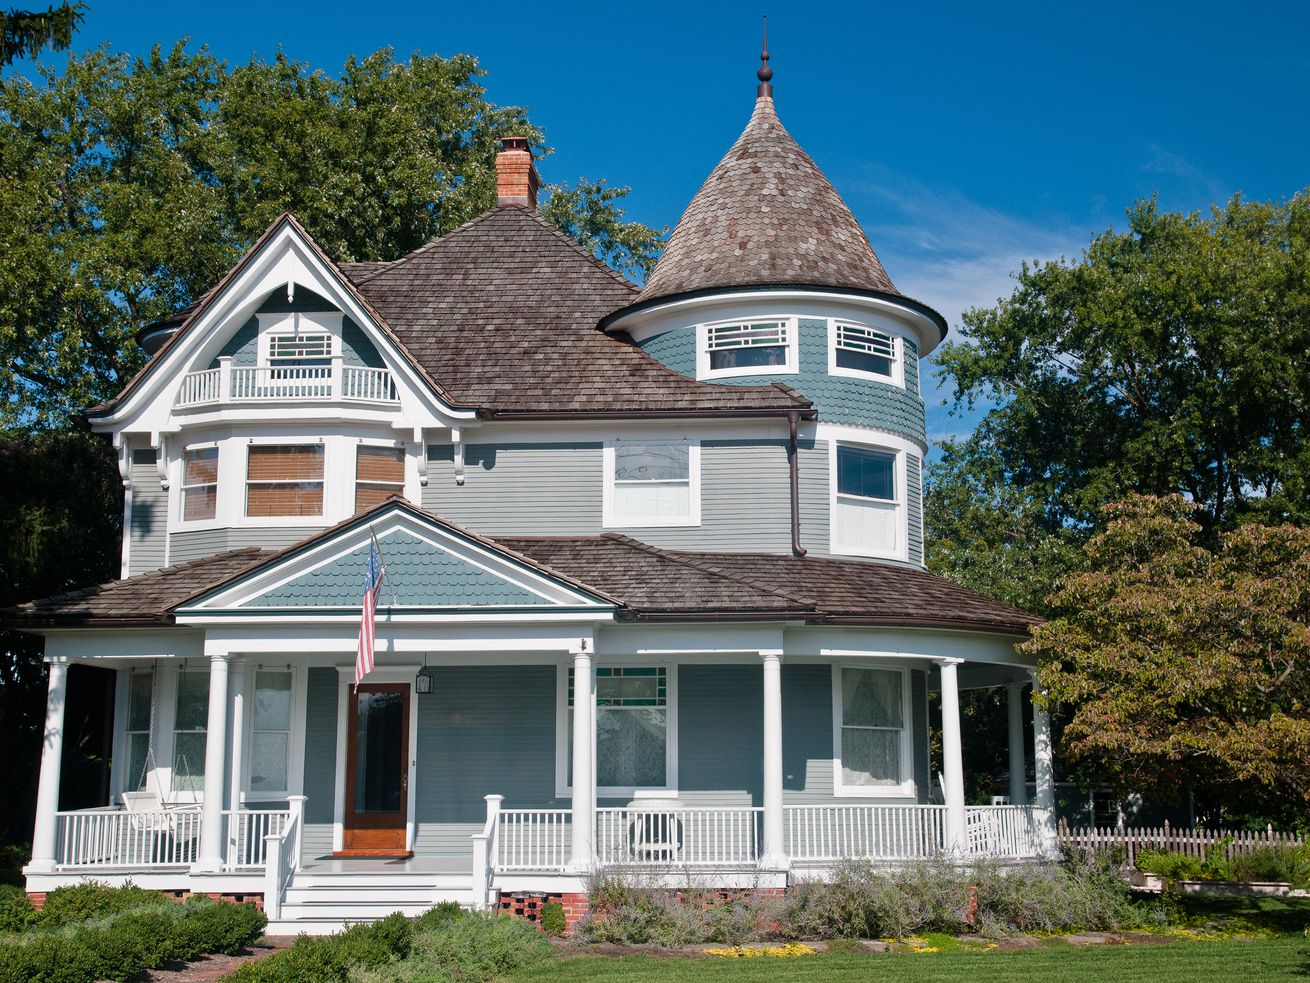 Beautiful gray traditional victorian house.